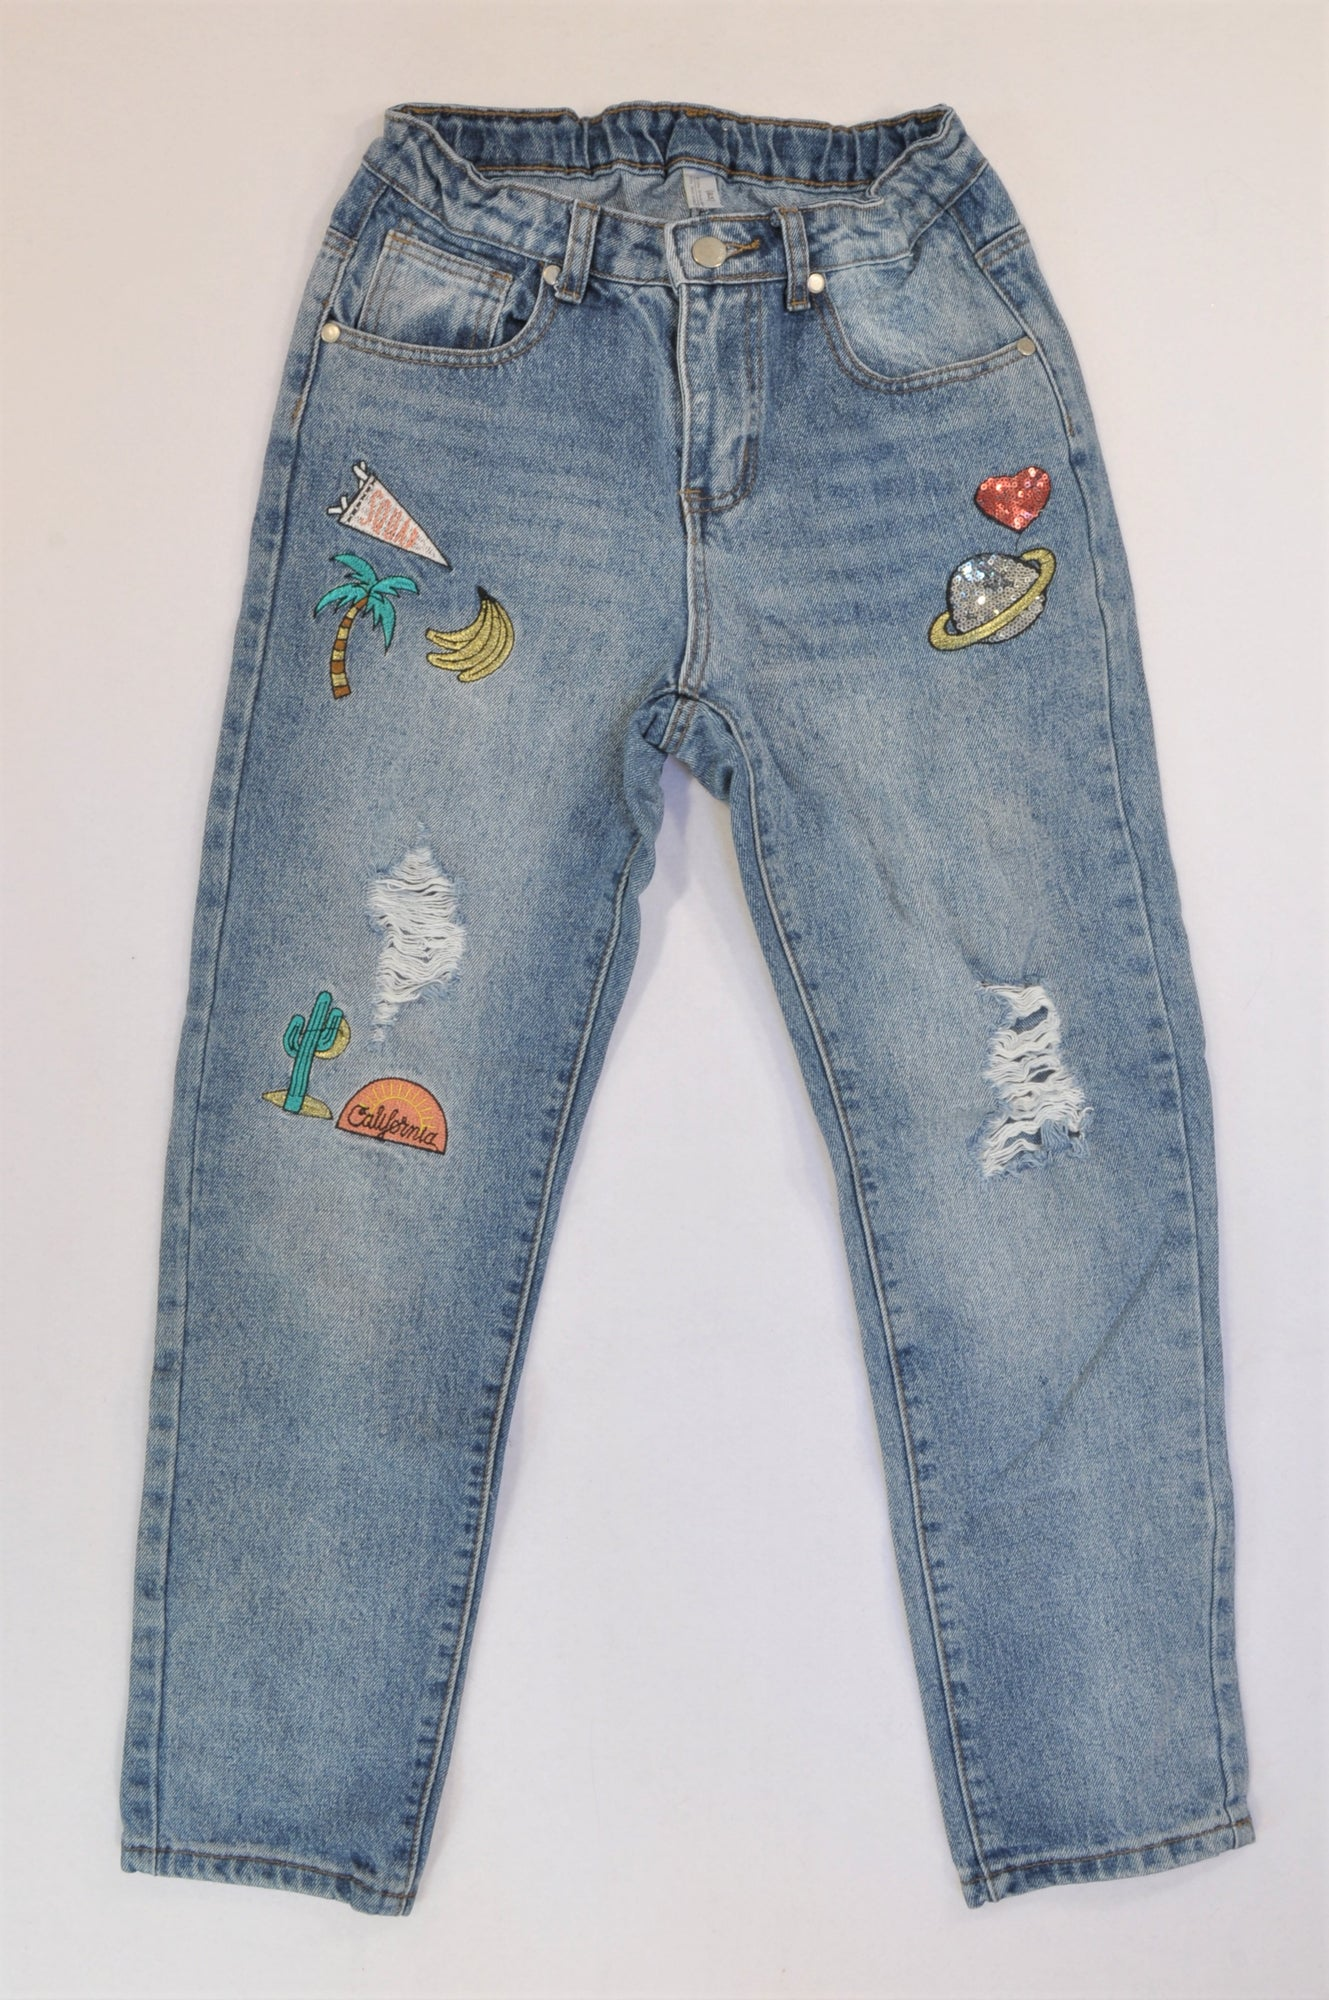 Woolworths Medium Wash Distressed California Patch Denim Jeans Girls 12-13 years